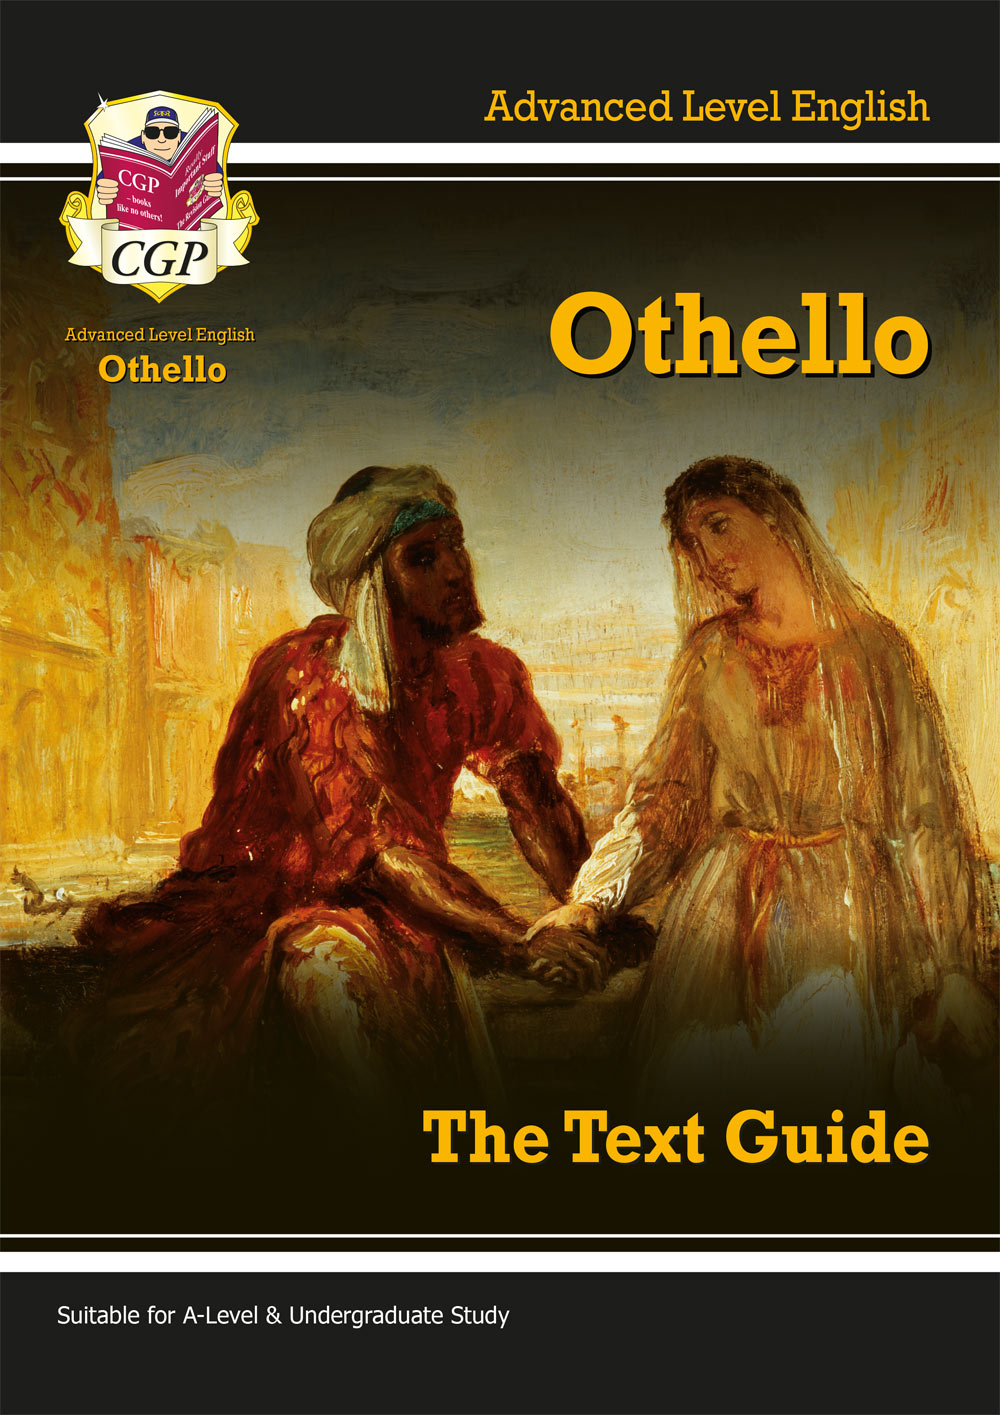 ETOT73 - A-level English Text Guide - Othello